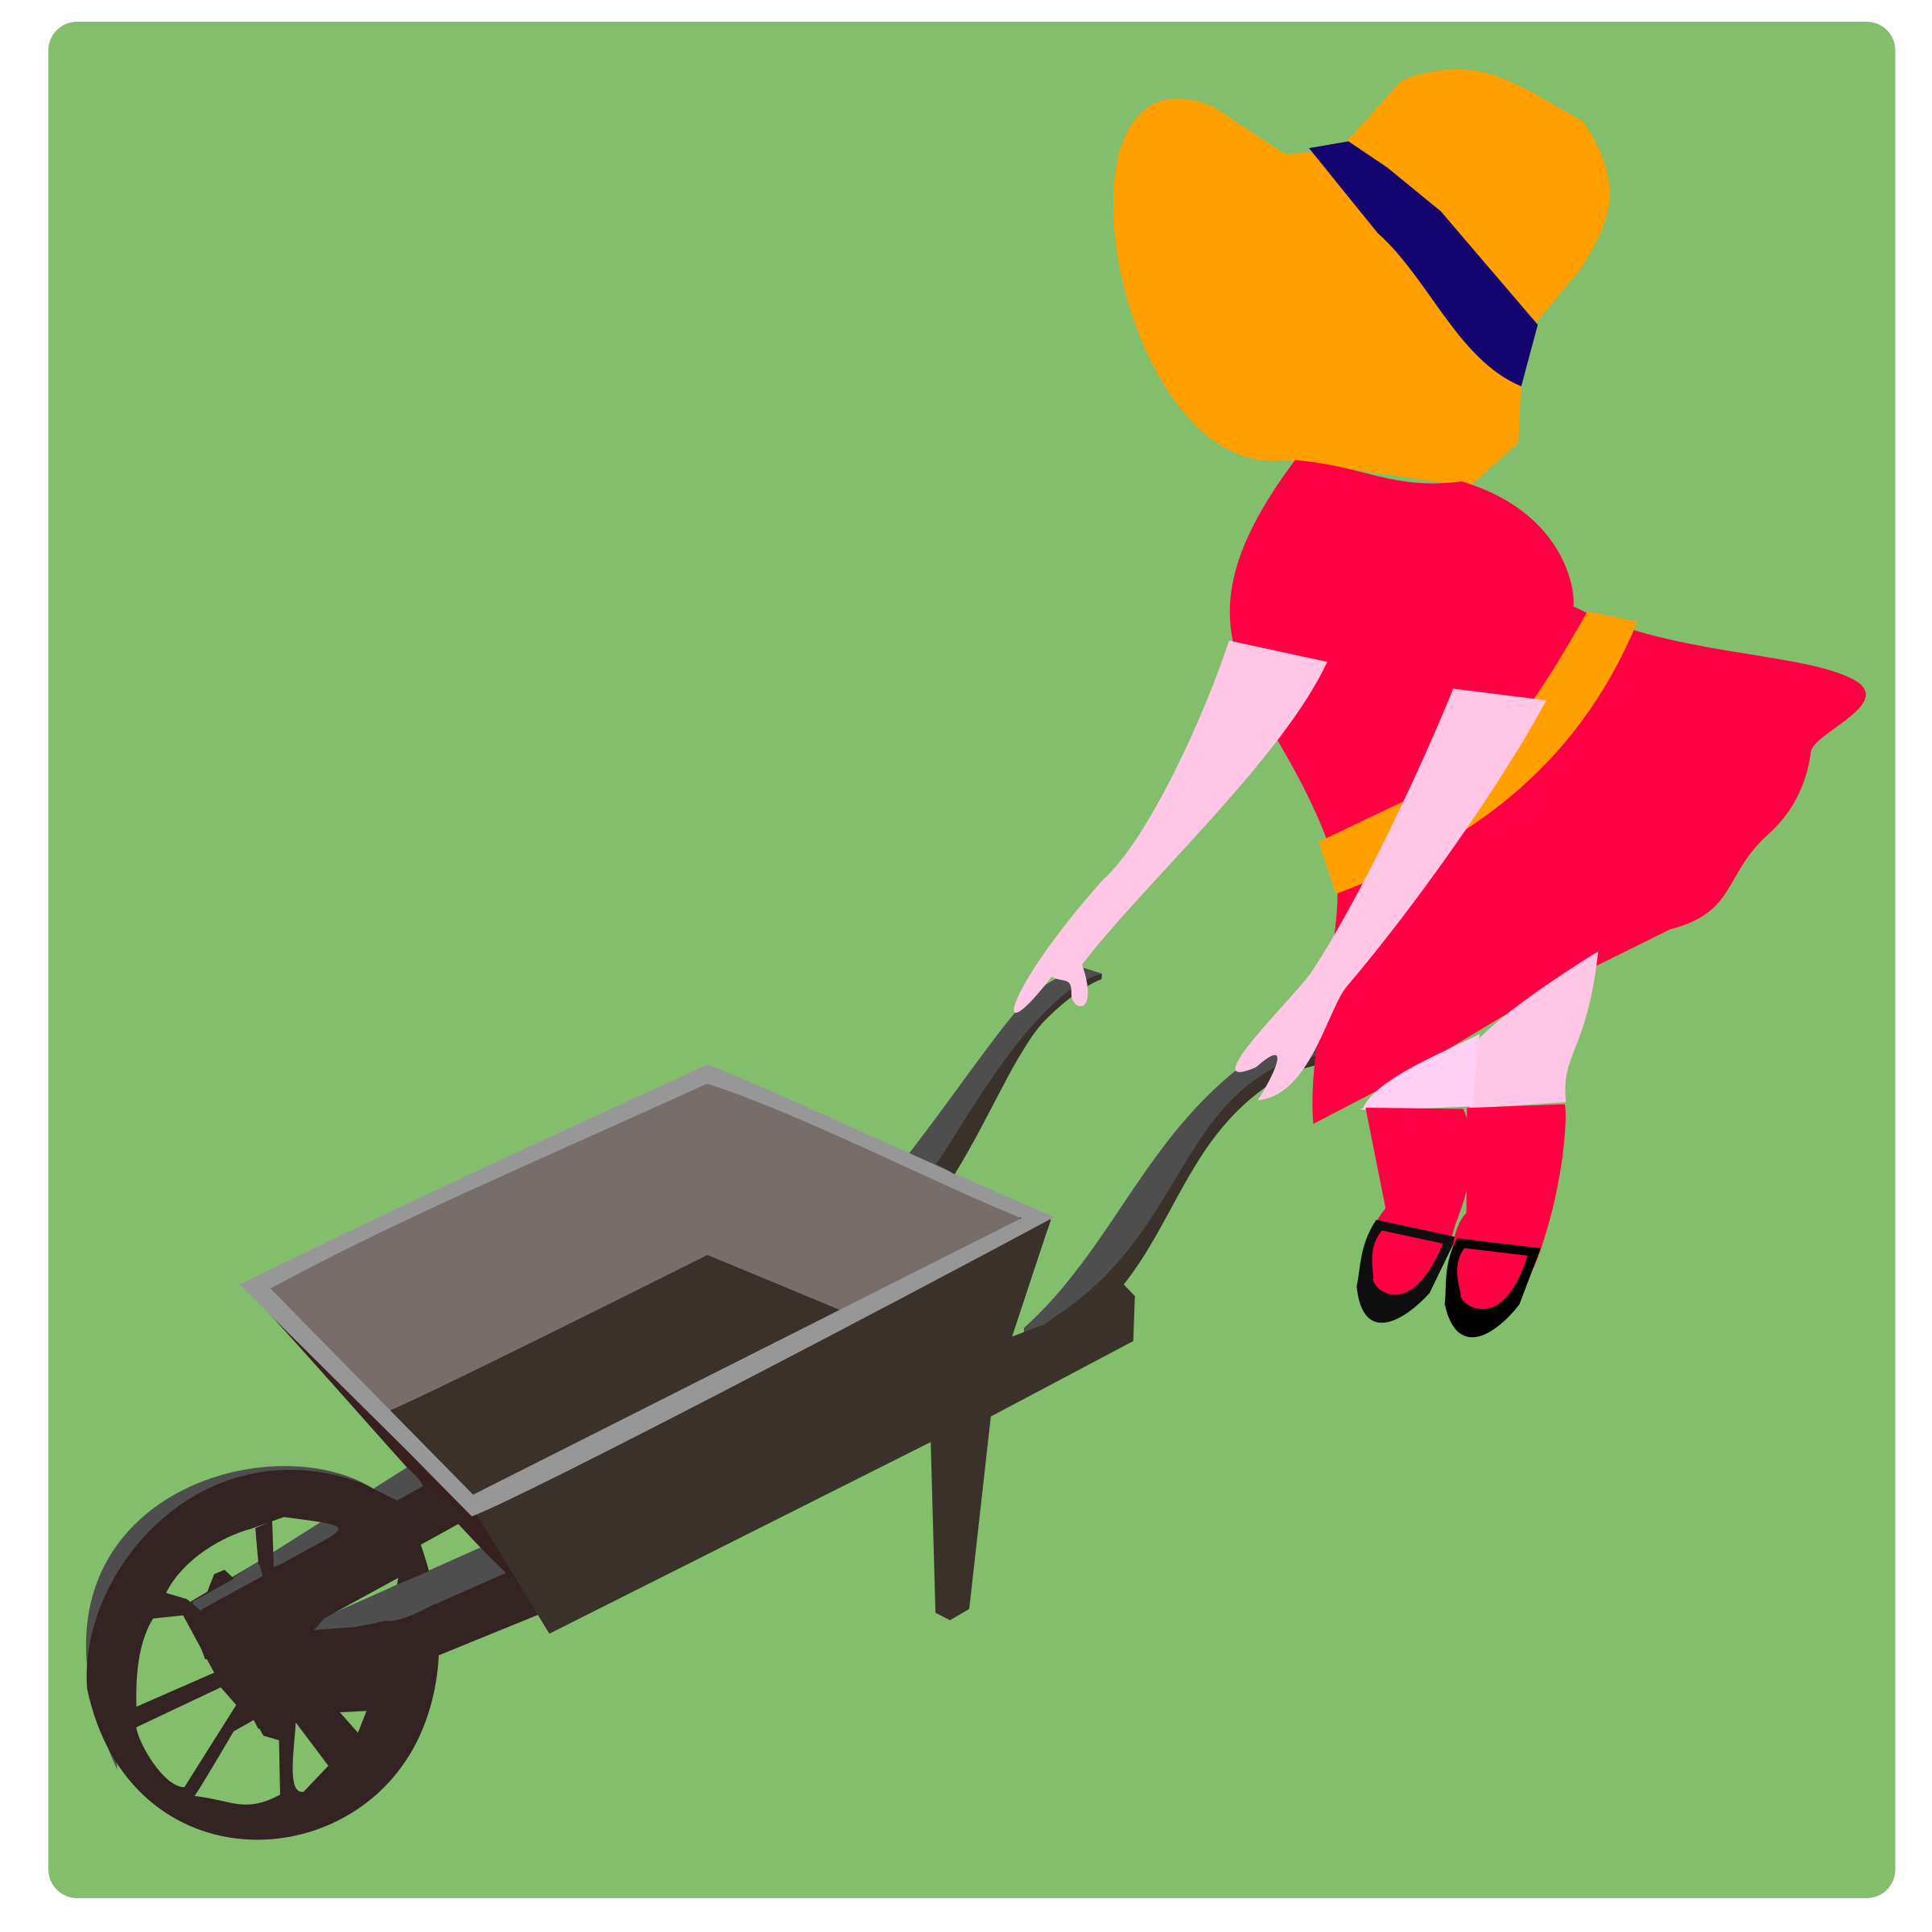 Wheel-barrow-girl by yamachem